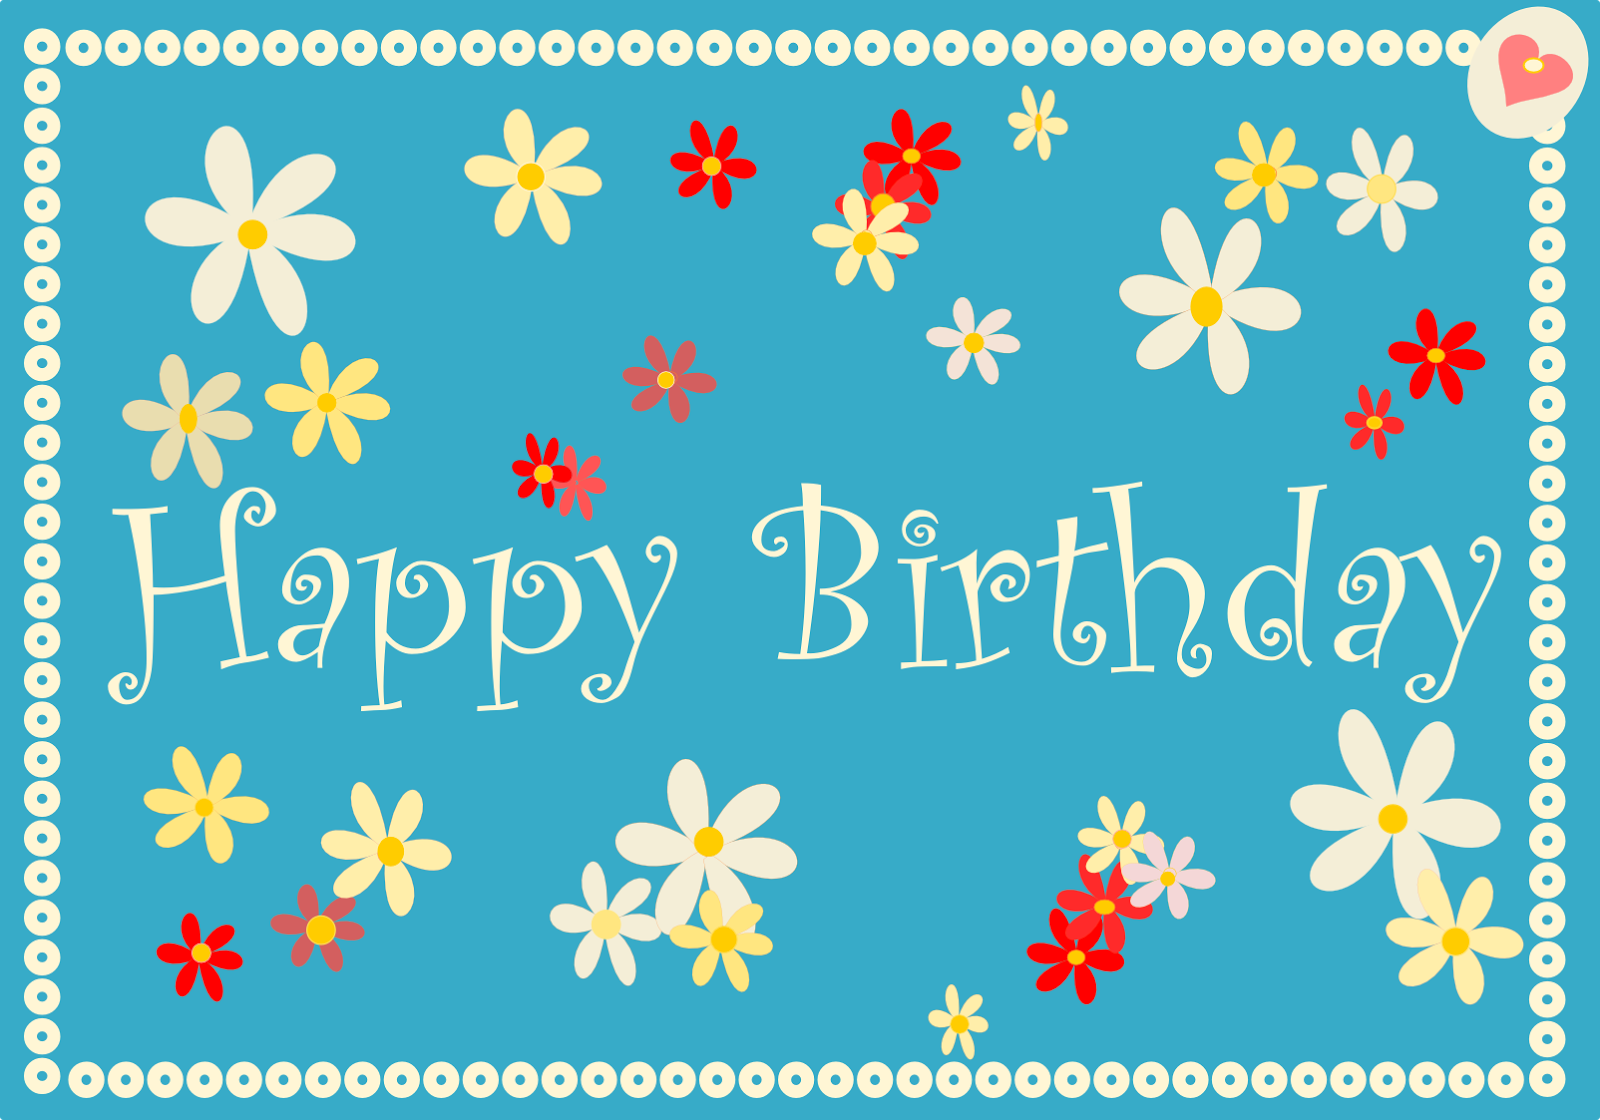 Happy Birthday Cards Free Printables